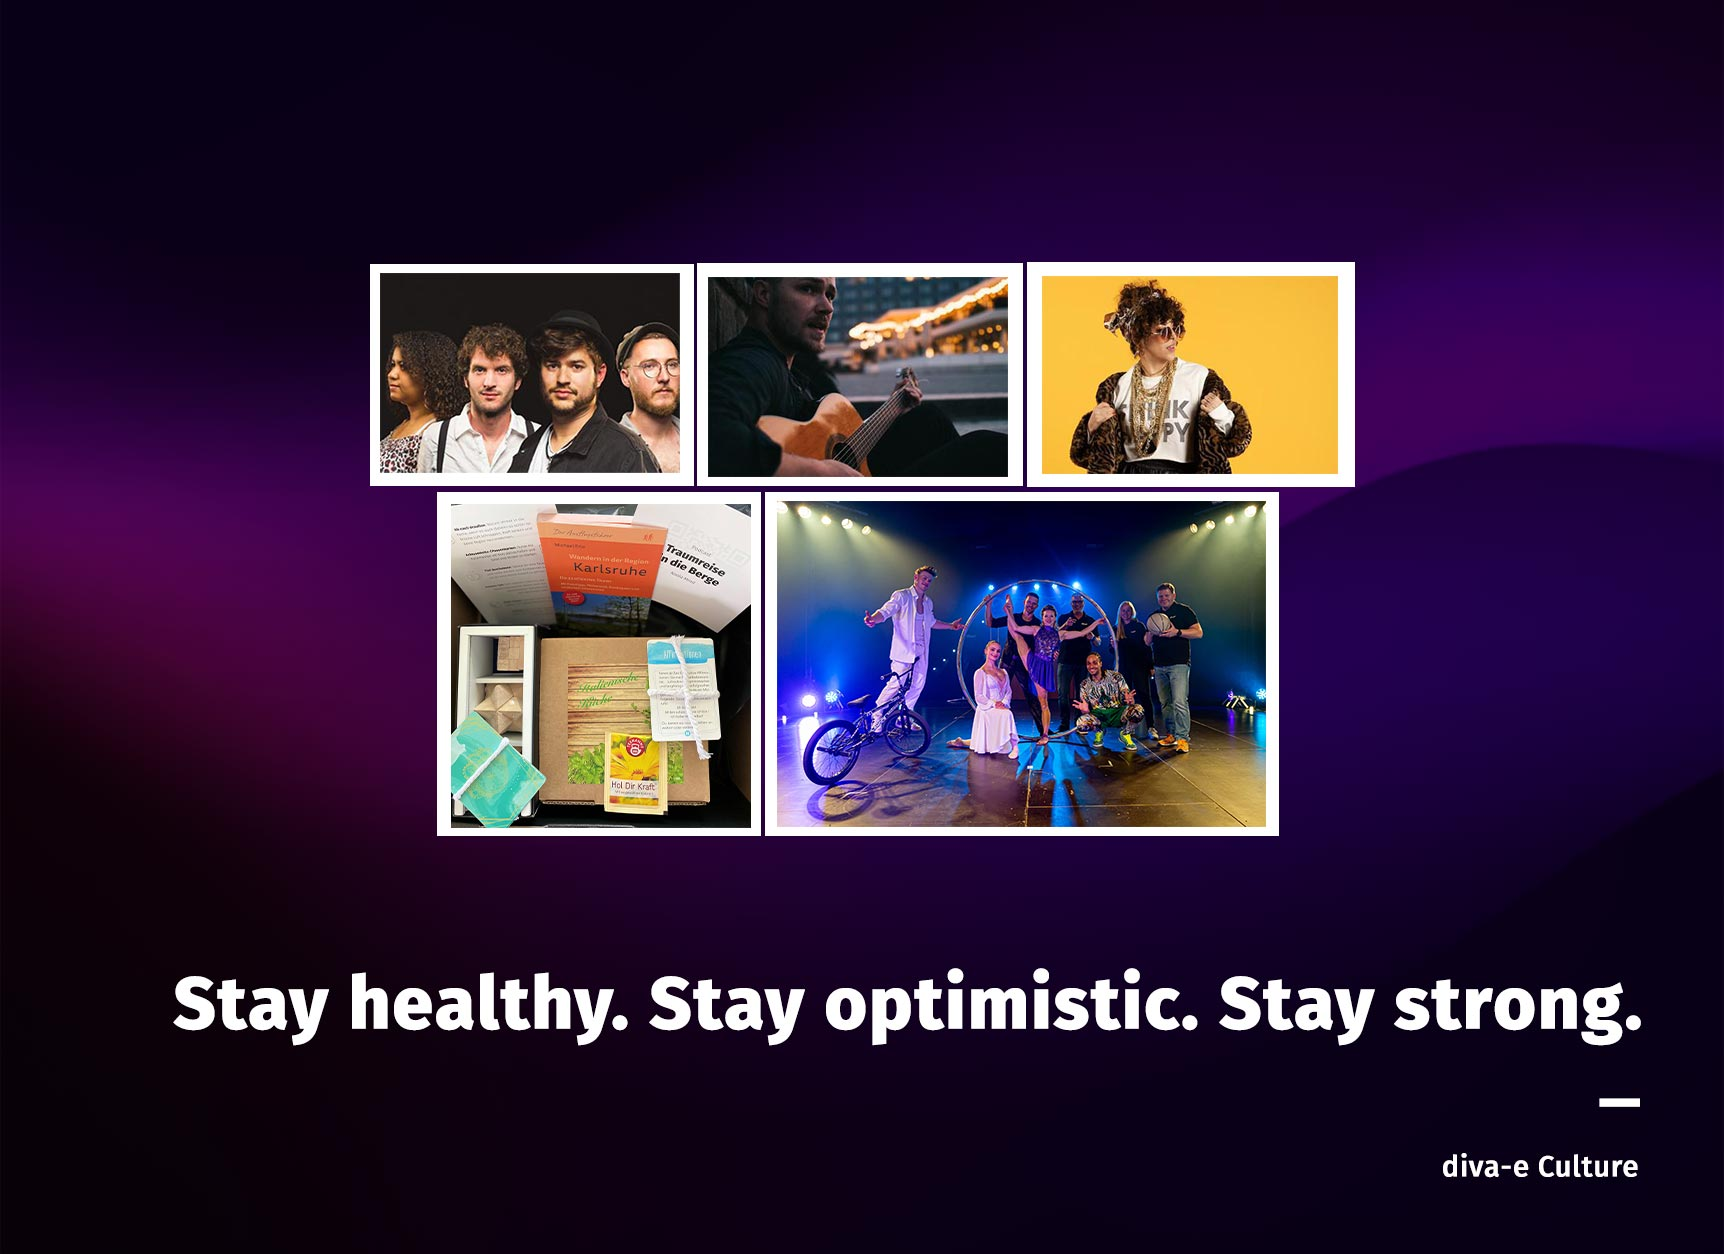 Stay healthy. Stay optimistic. Stay strong.